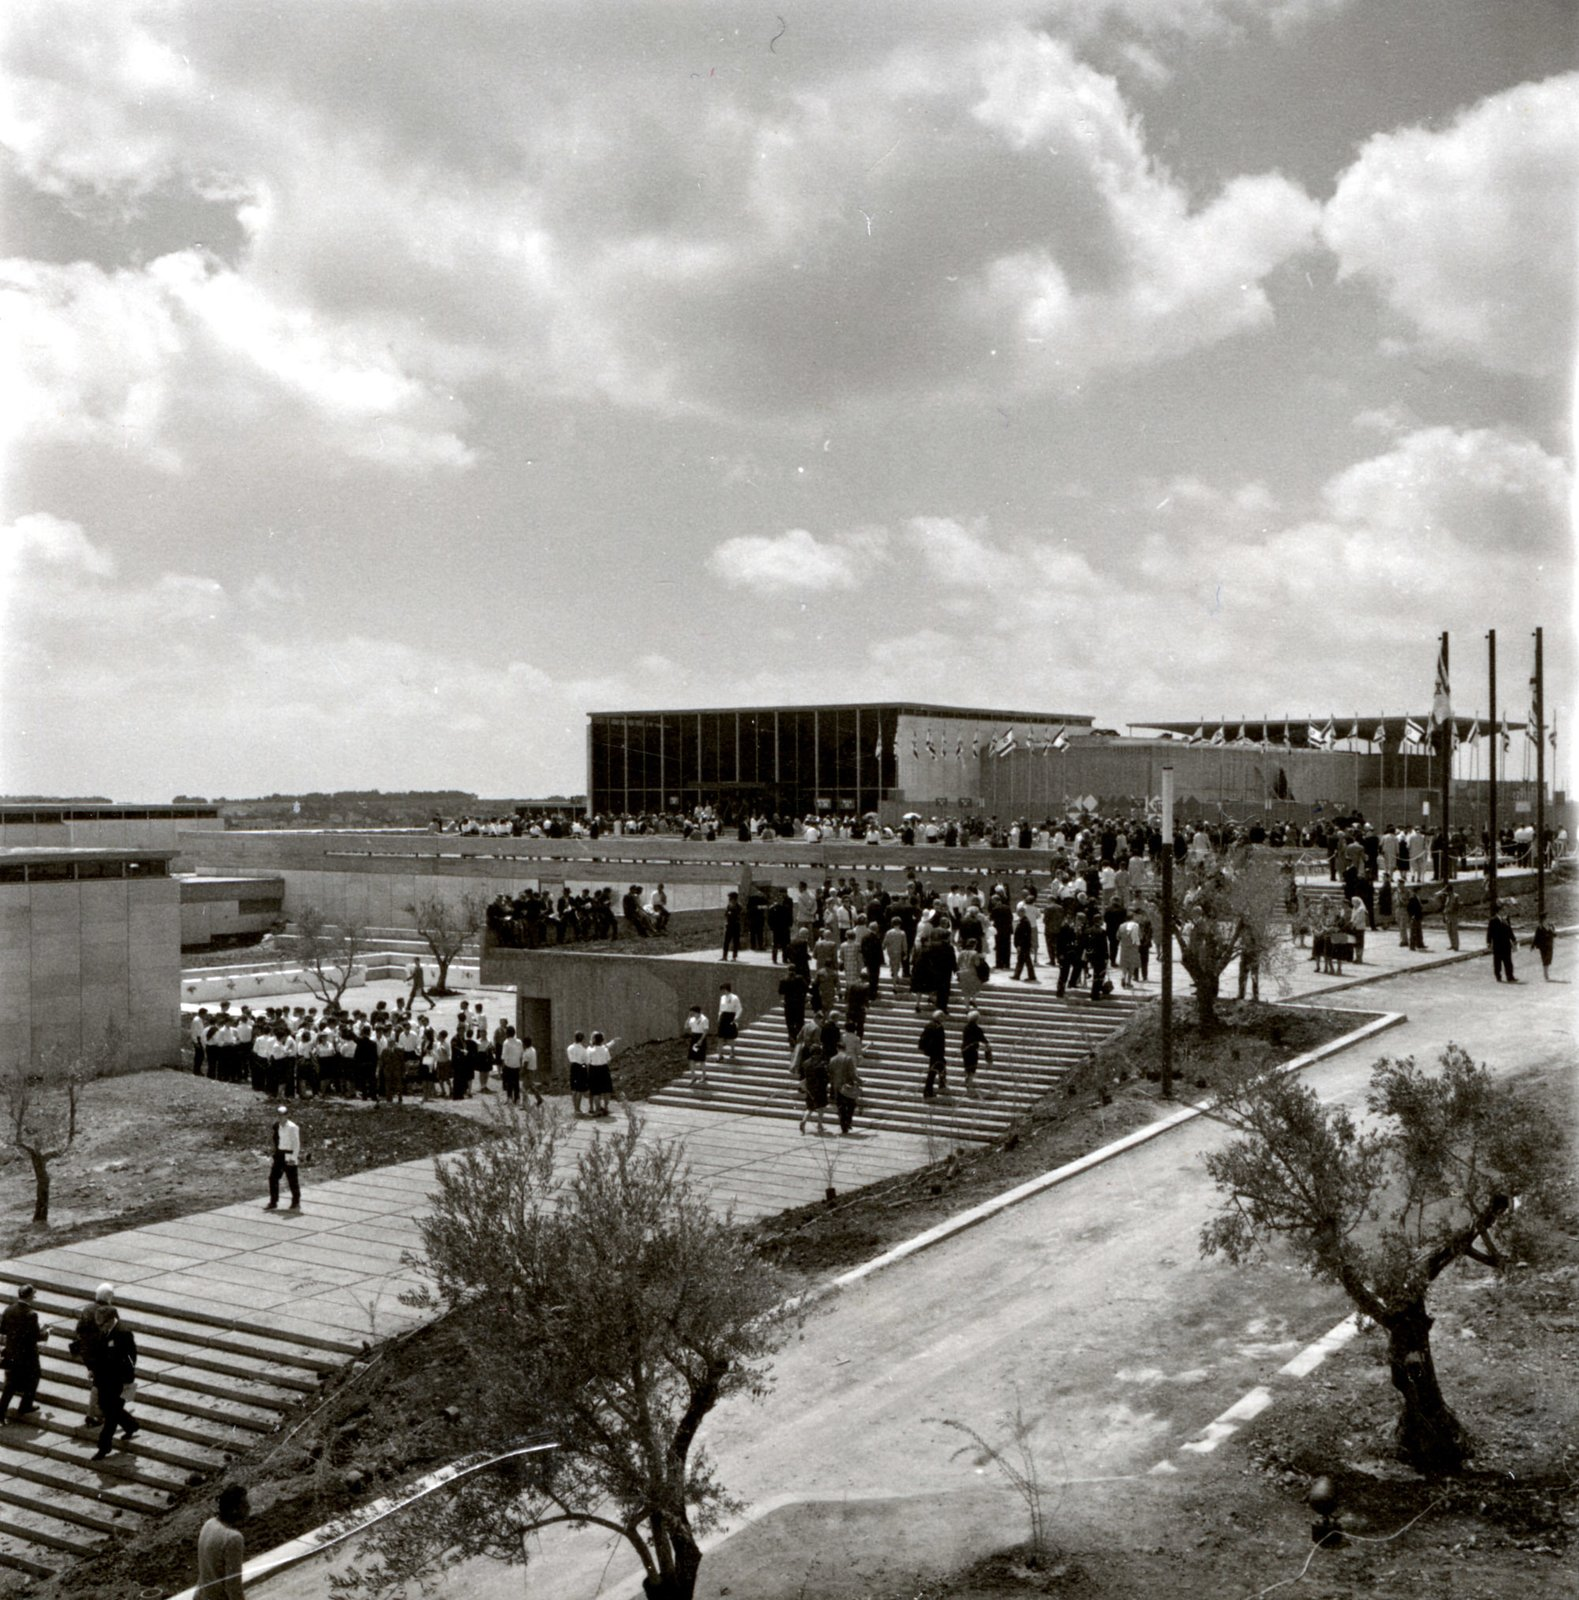 Designed by Russian-born architect Al Mansfeld, the museum is located atop Neveh Sha'anan, the Hill of Tranquility, in Jerusalem. The structure was a cutting-edge example of modular building: it consists of 120-square-foot units that can be grouped together or sit on their own.  This is What Design Looked Like in Israel in 1965 by Allie Weiss